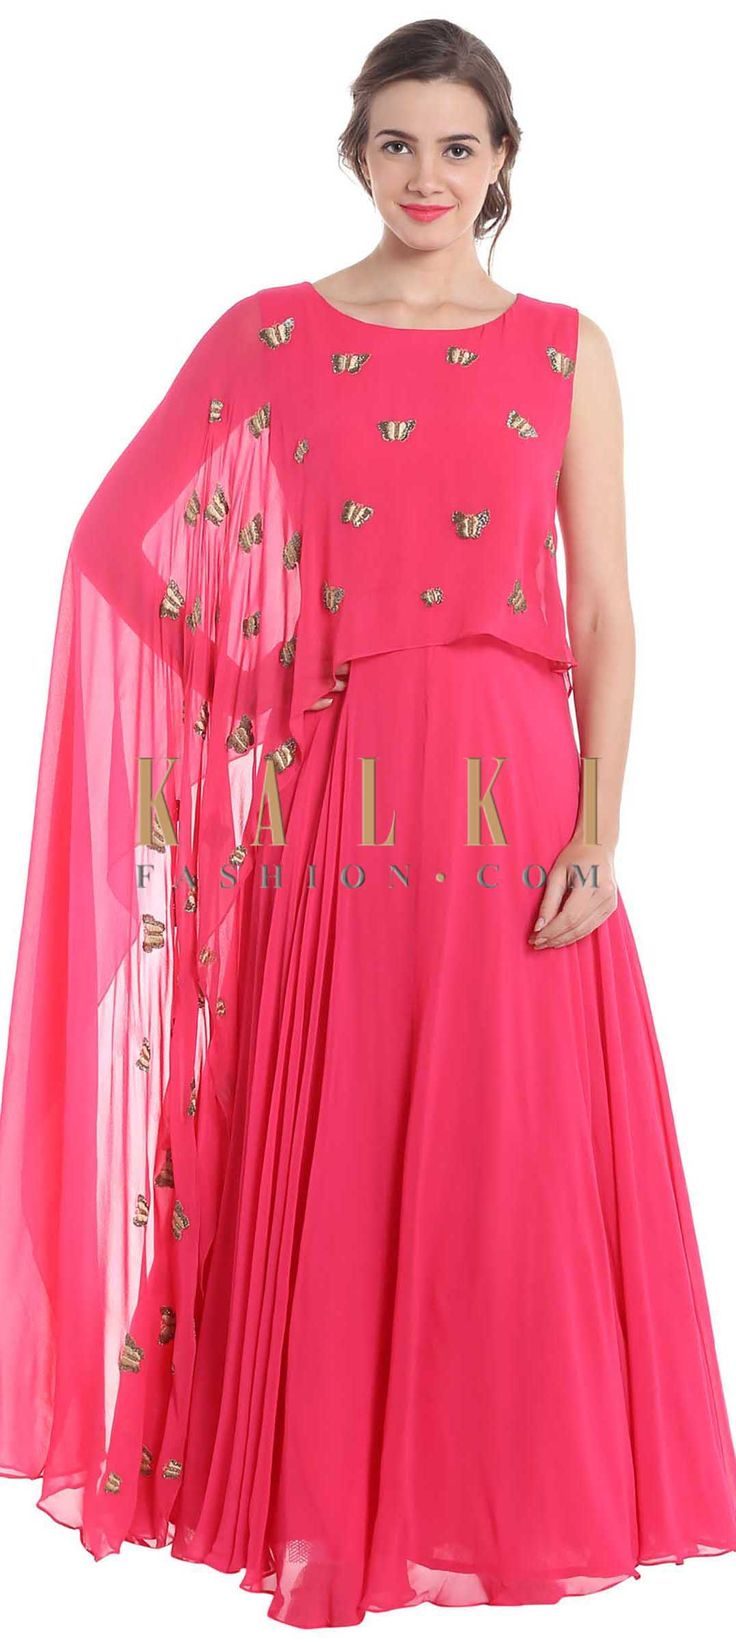 Rani pink georgette suit with resham and cut dana butterfly motifs only on Kalki